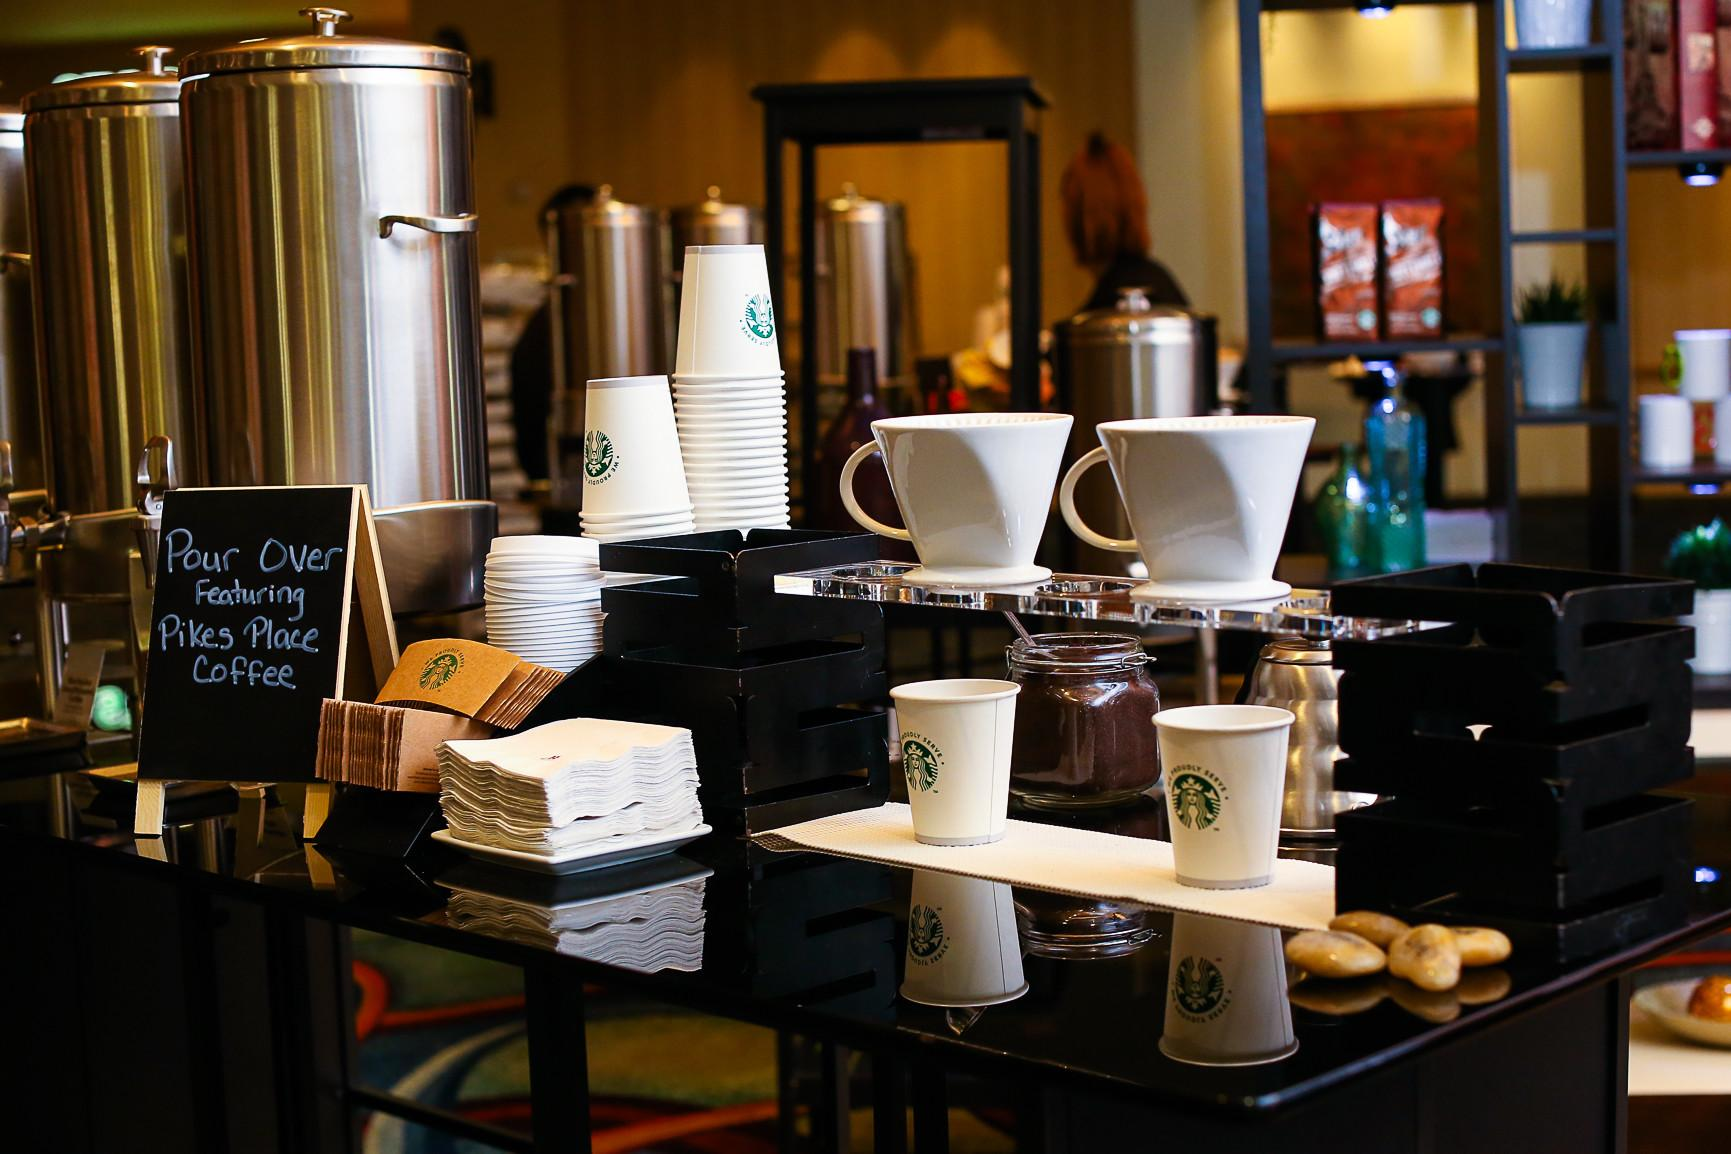 Unique Coffee Station Meetings Imagined